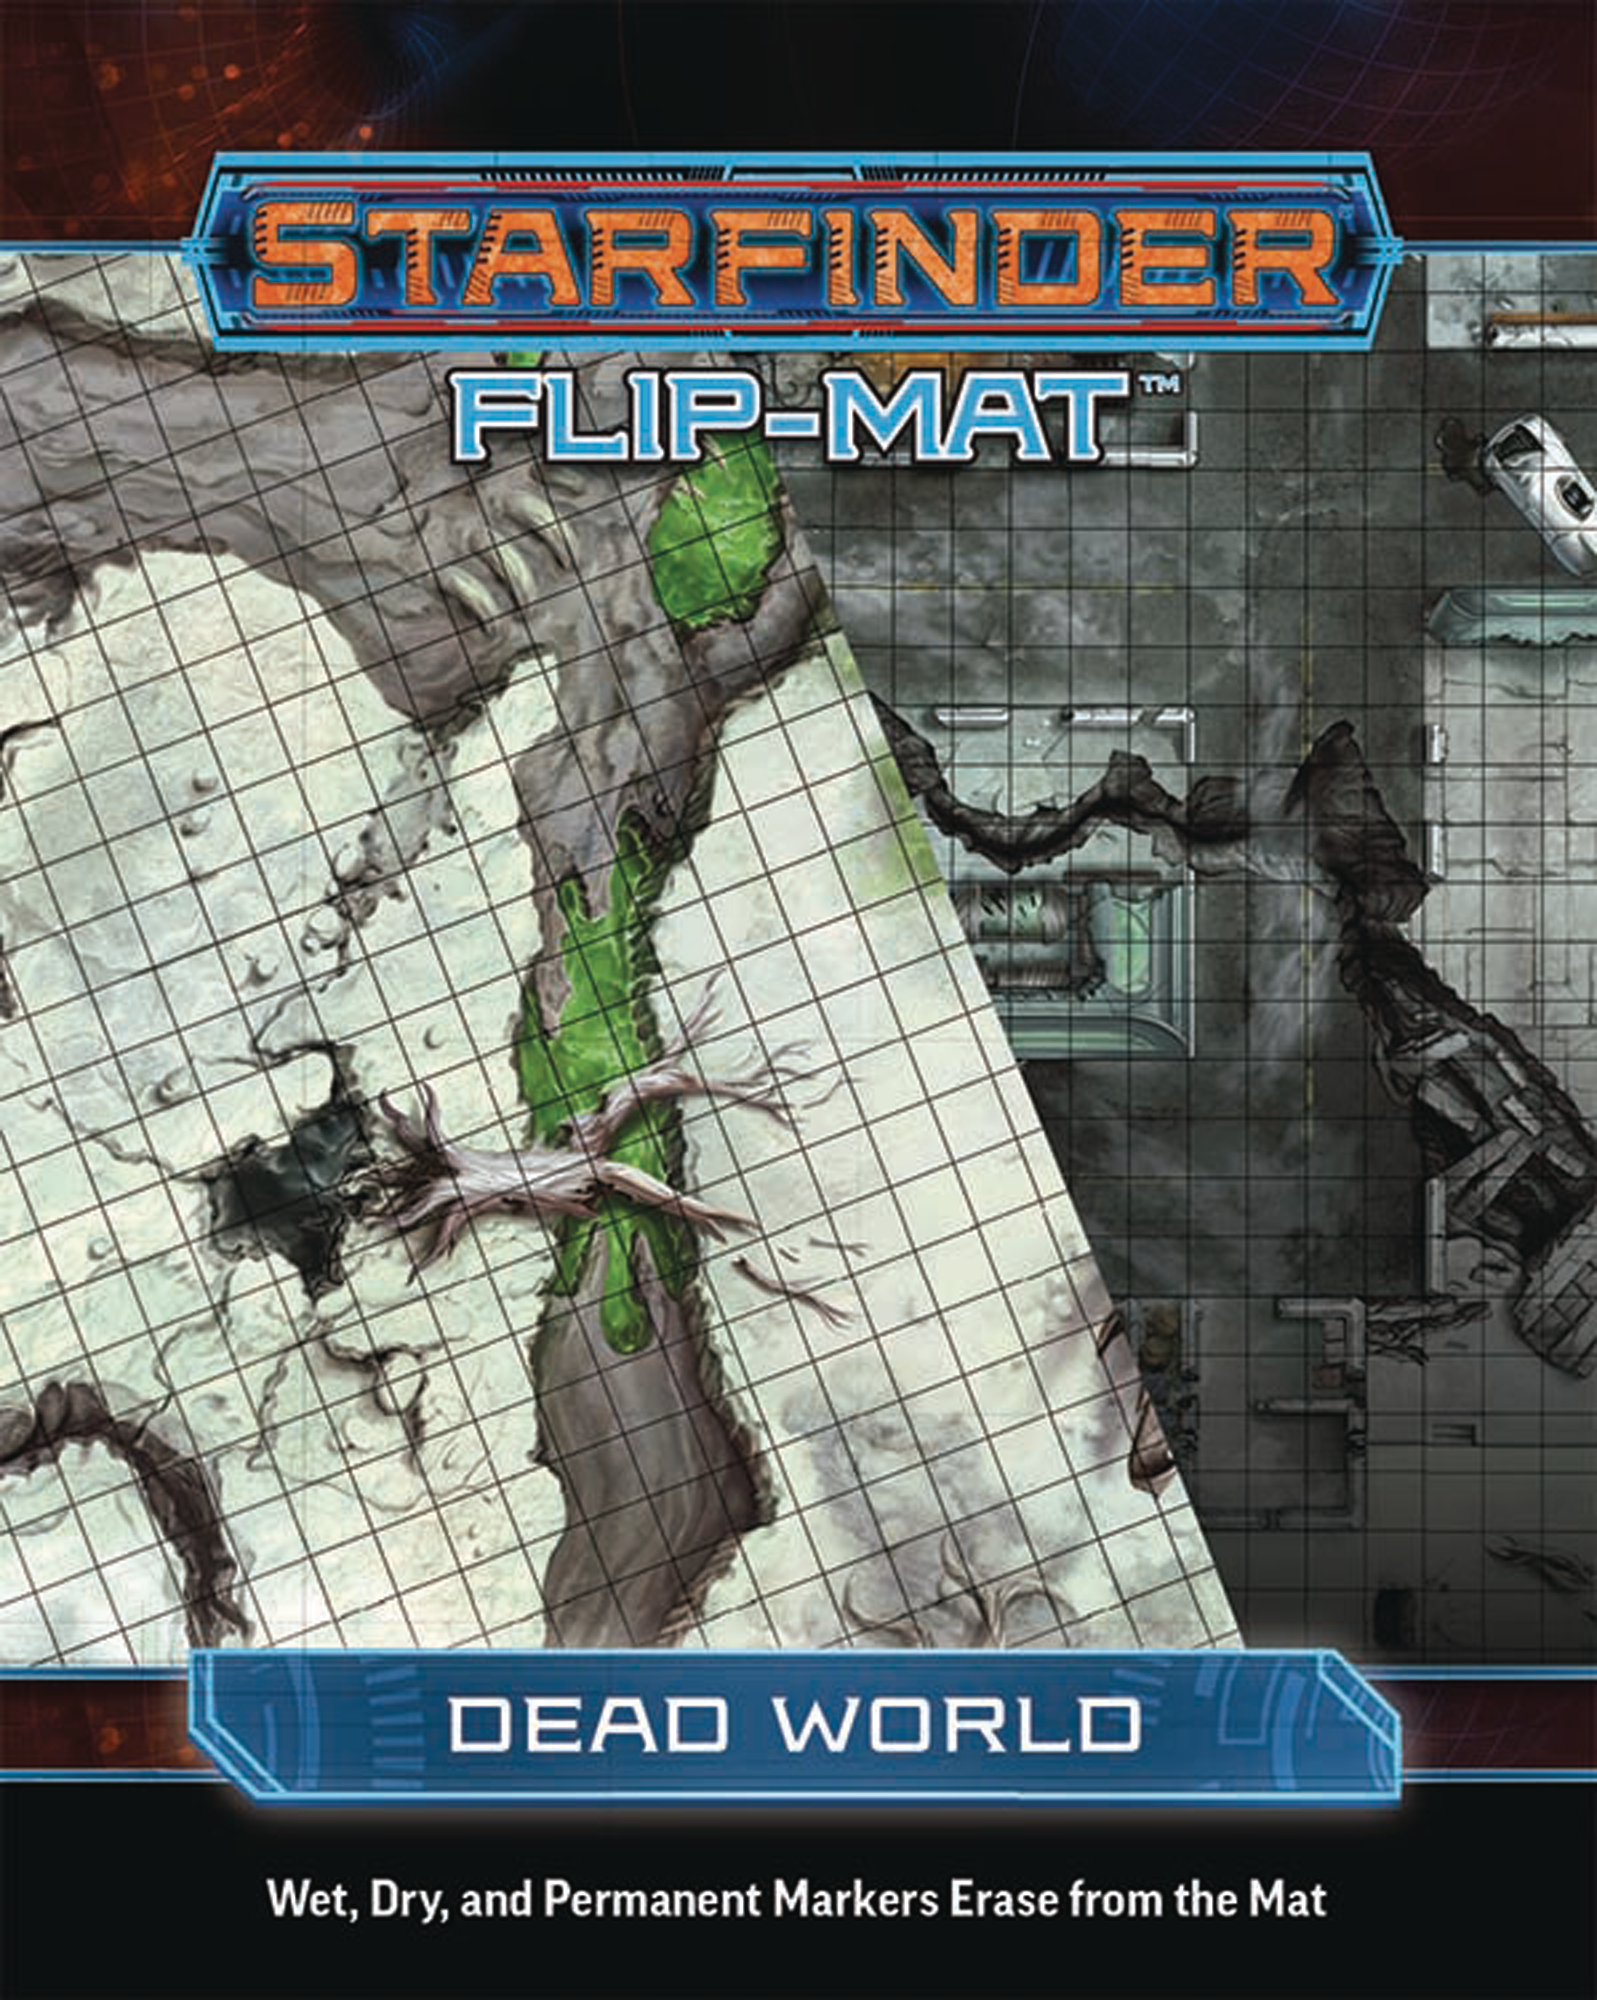 STARFINDER RPG FLIP MAT DEAD WORLD